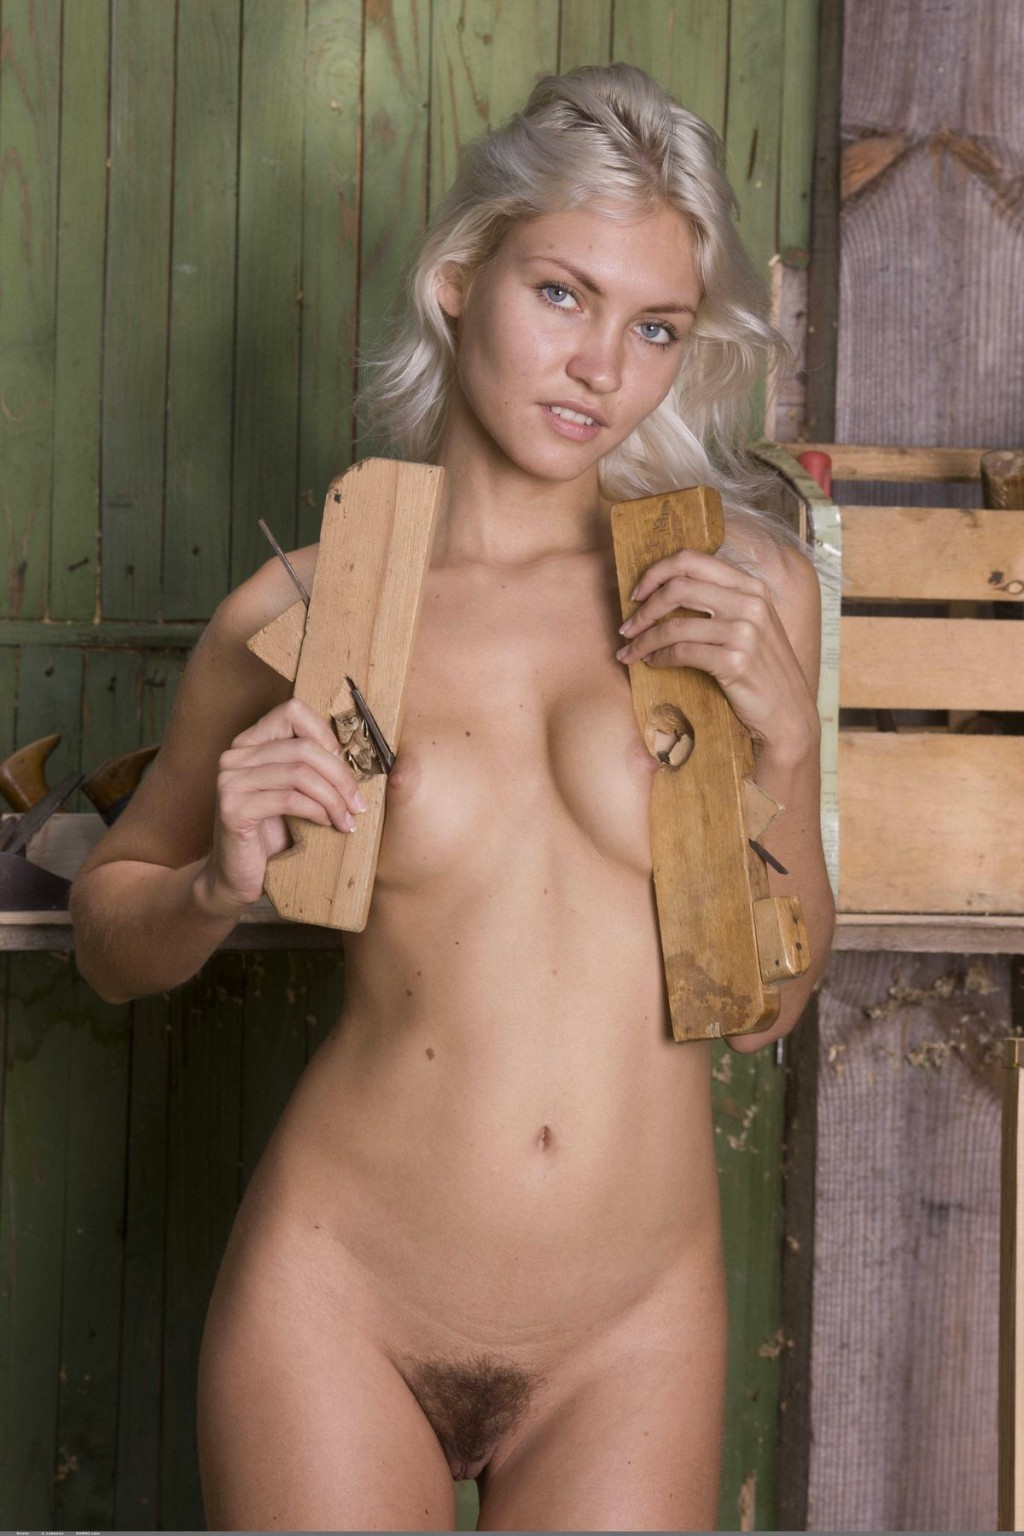 Sorry, free half naked blond babes pics